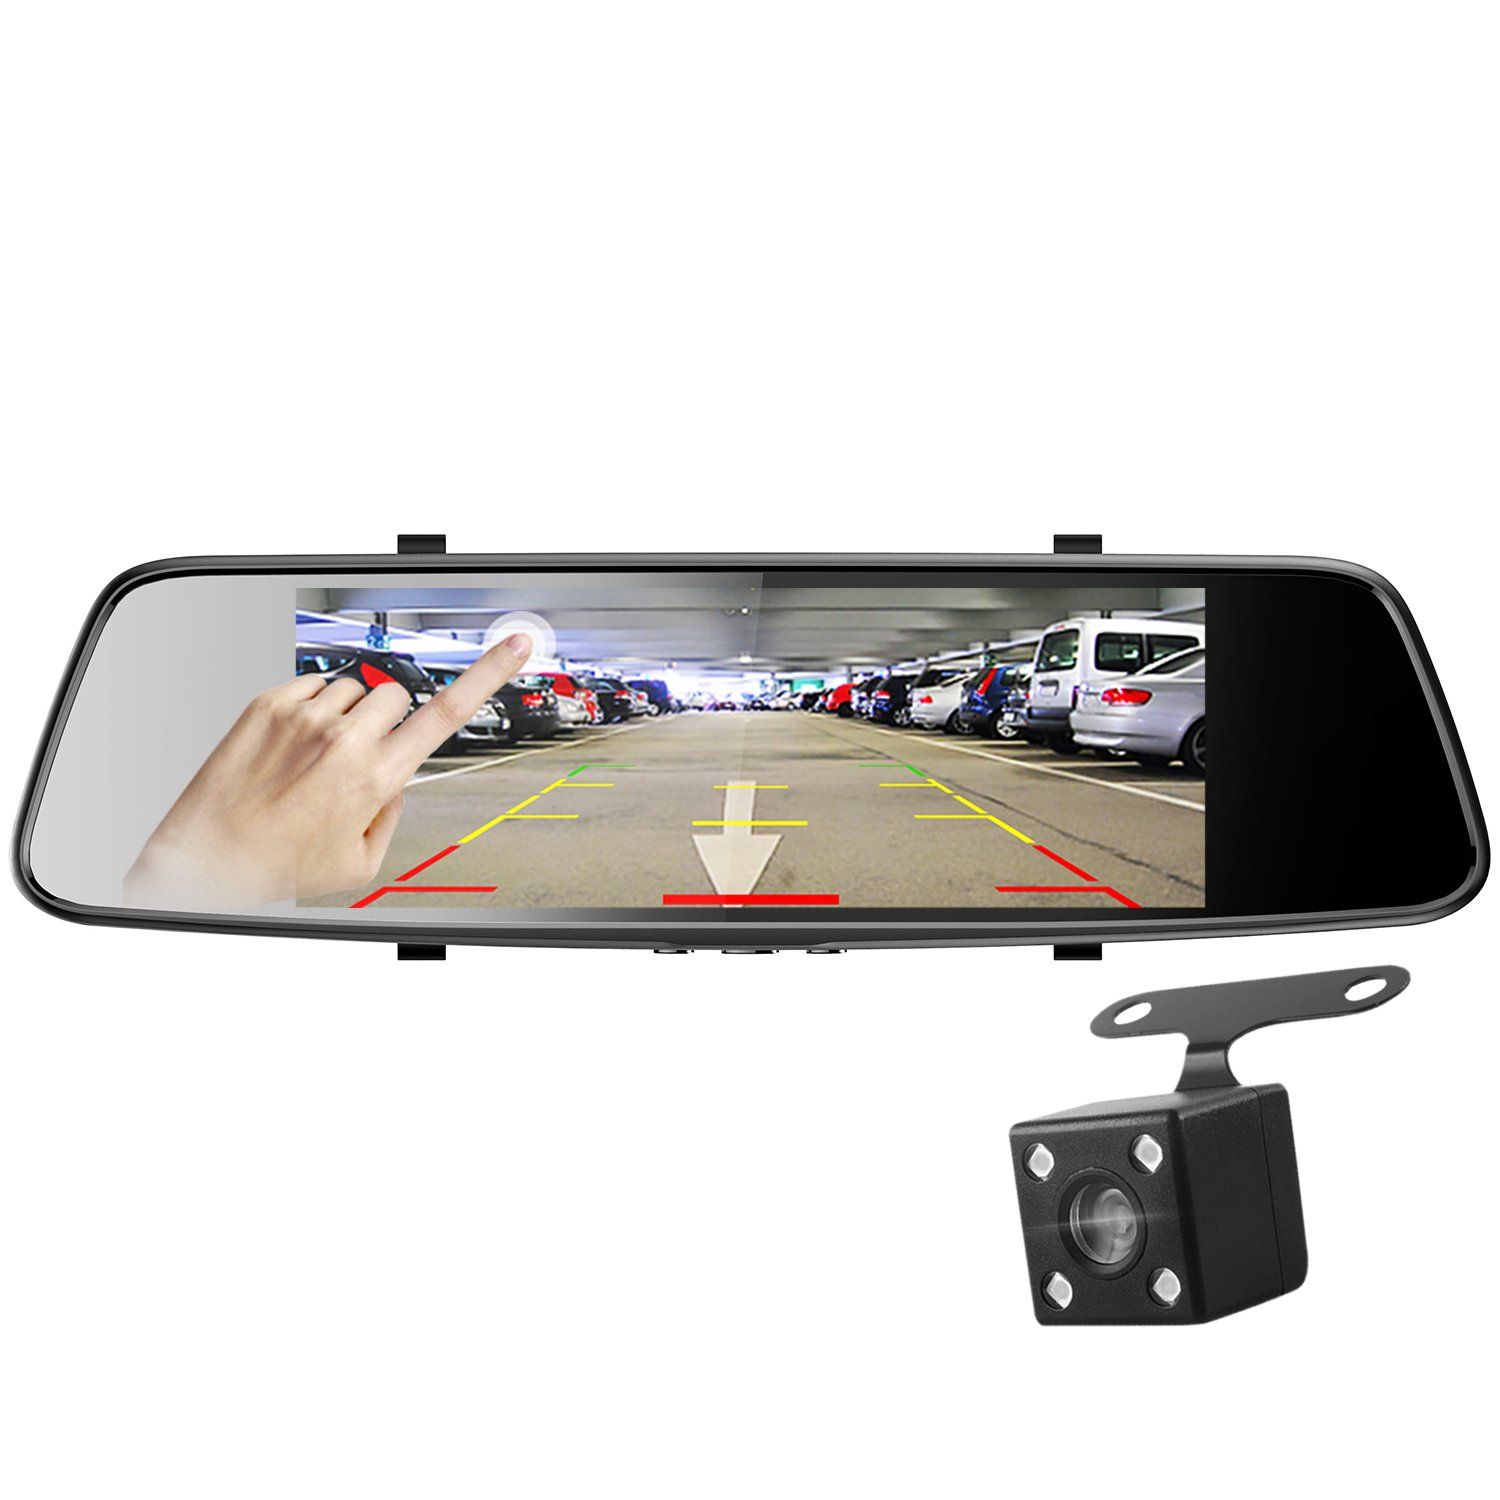 Pruveeo Mirror Dash Cam Black Friday Deal 2019